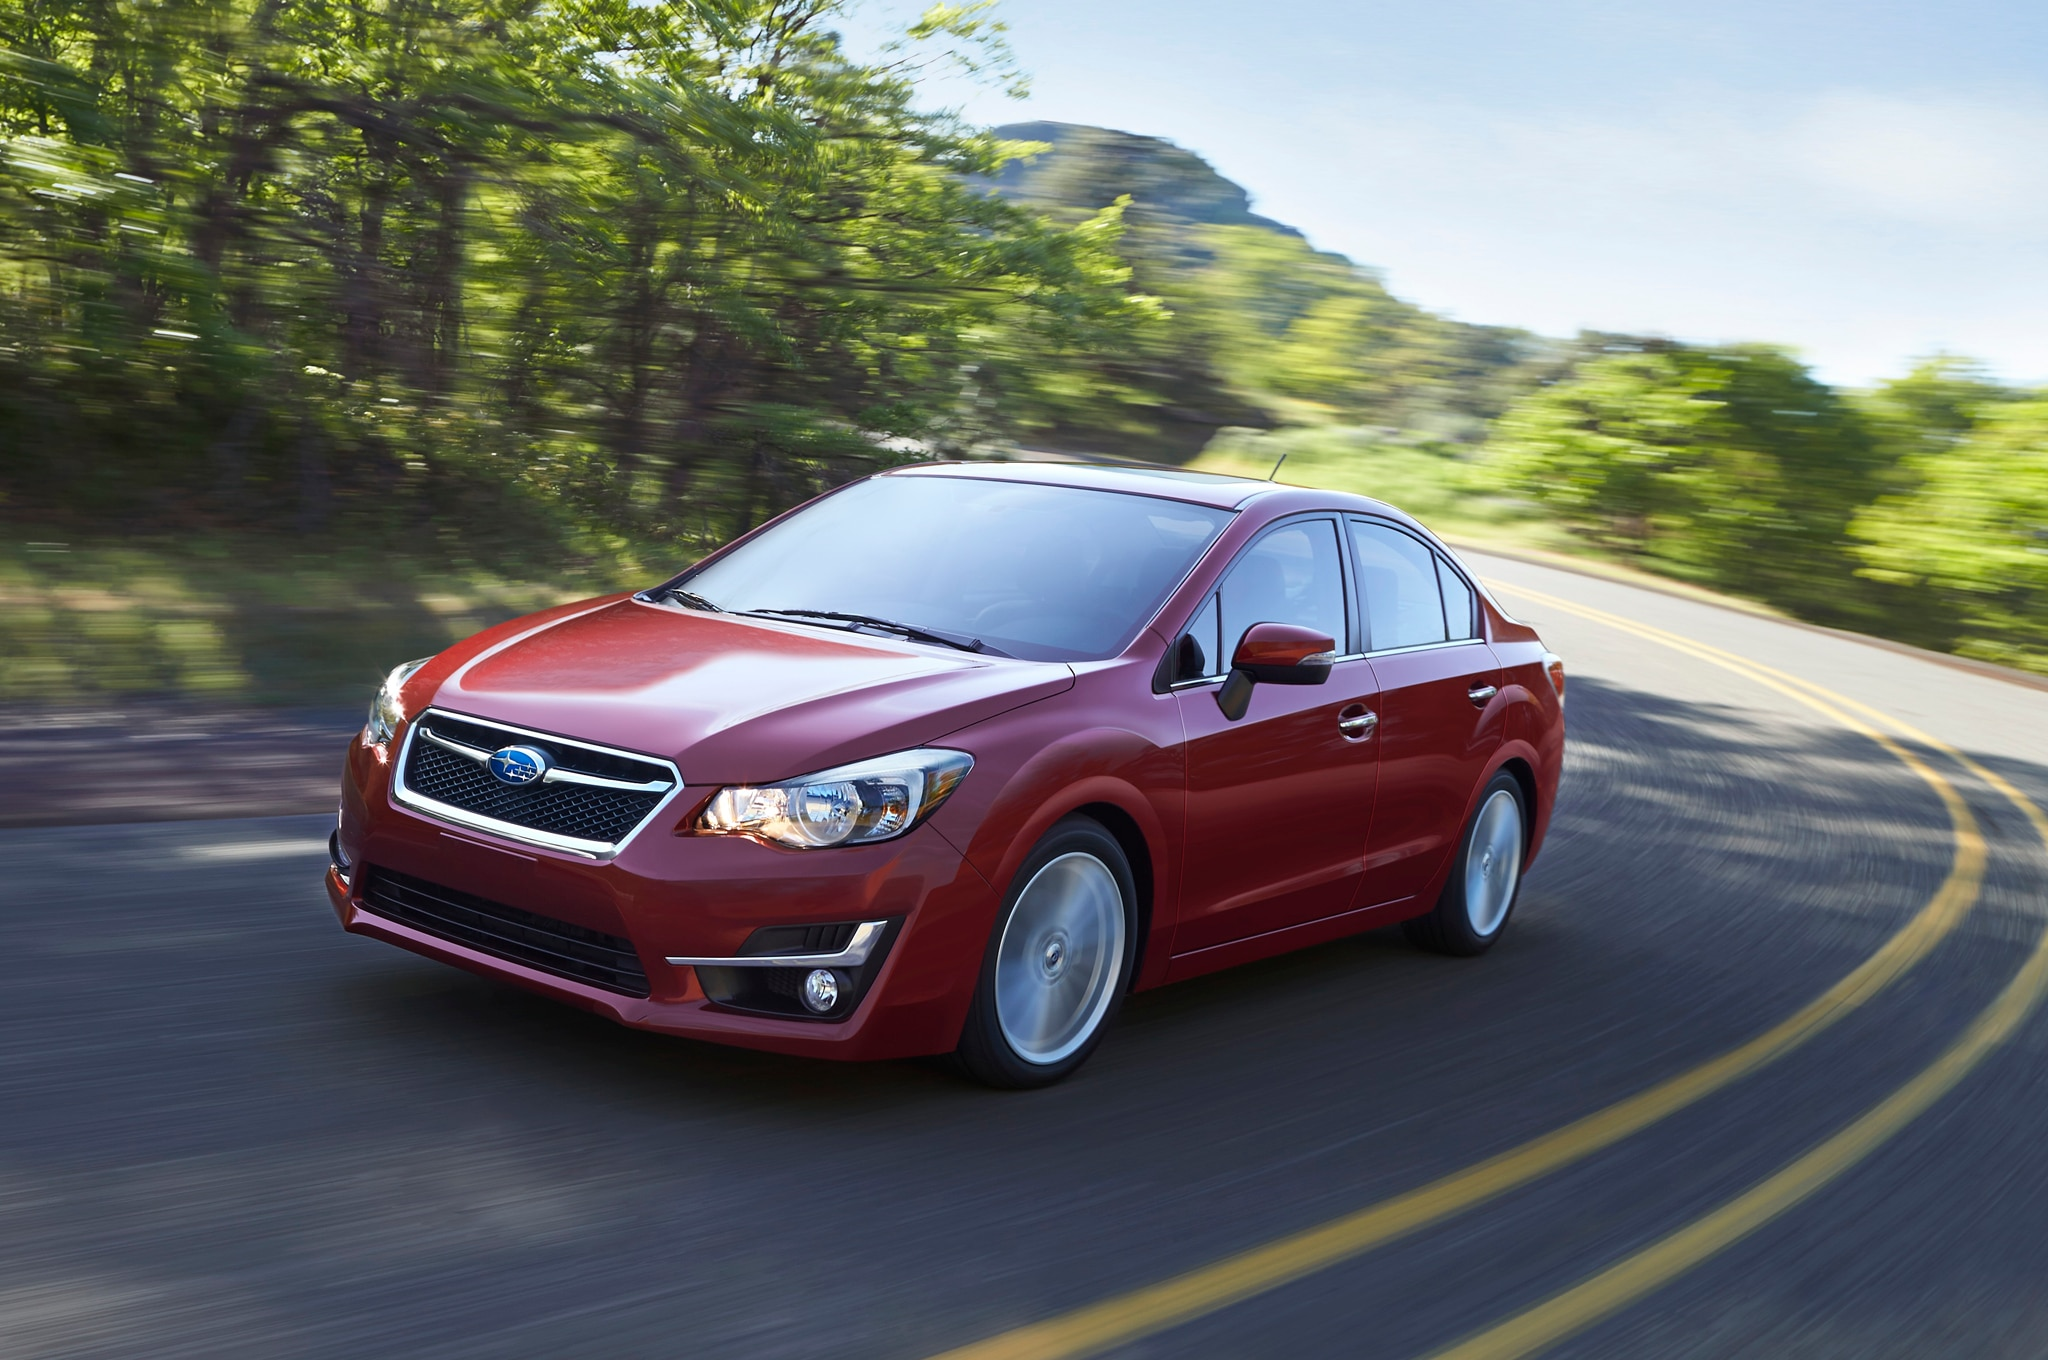 2015 subaru impreza refreshed with new features, improved mpg